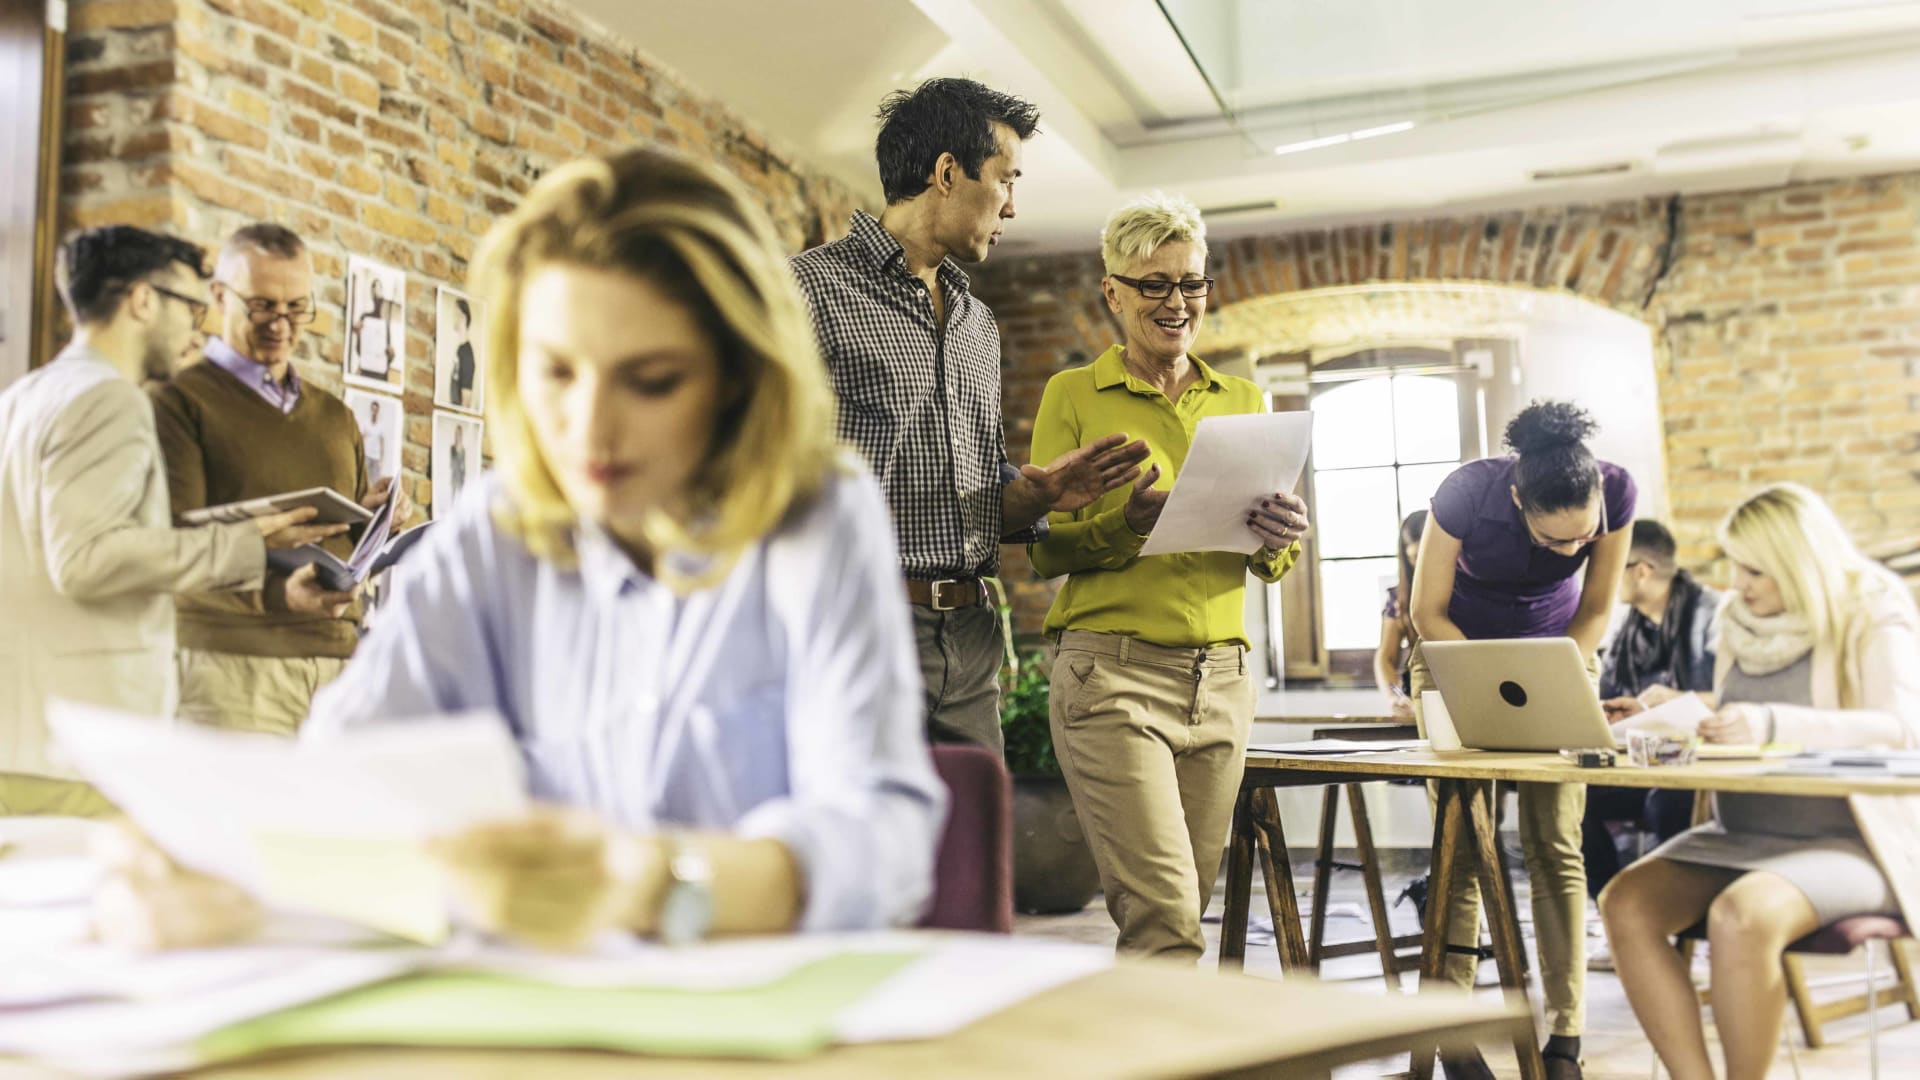 If You're Too Busy for These 3 Things, Your Leadership Skills May Need a Tune-Up